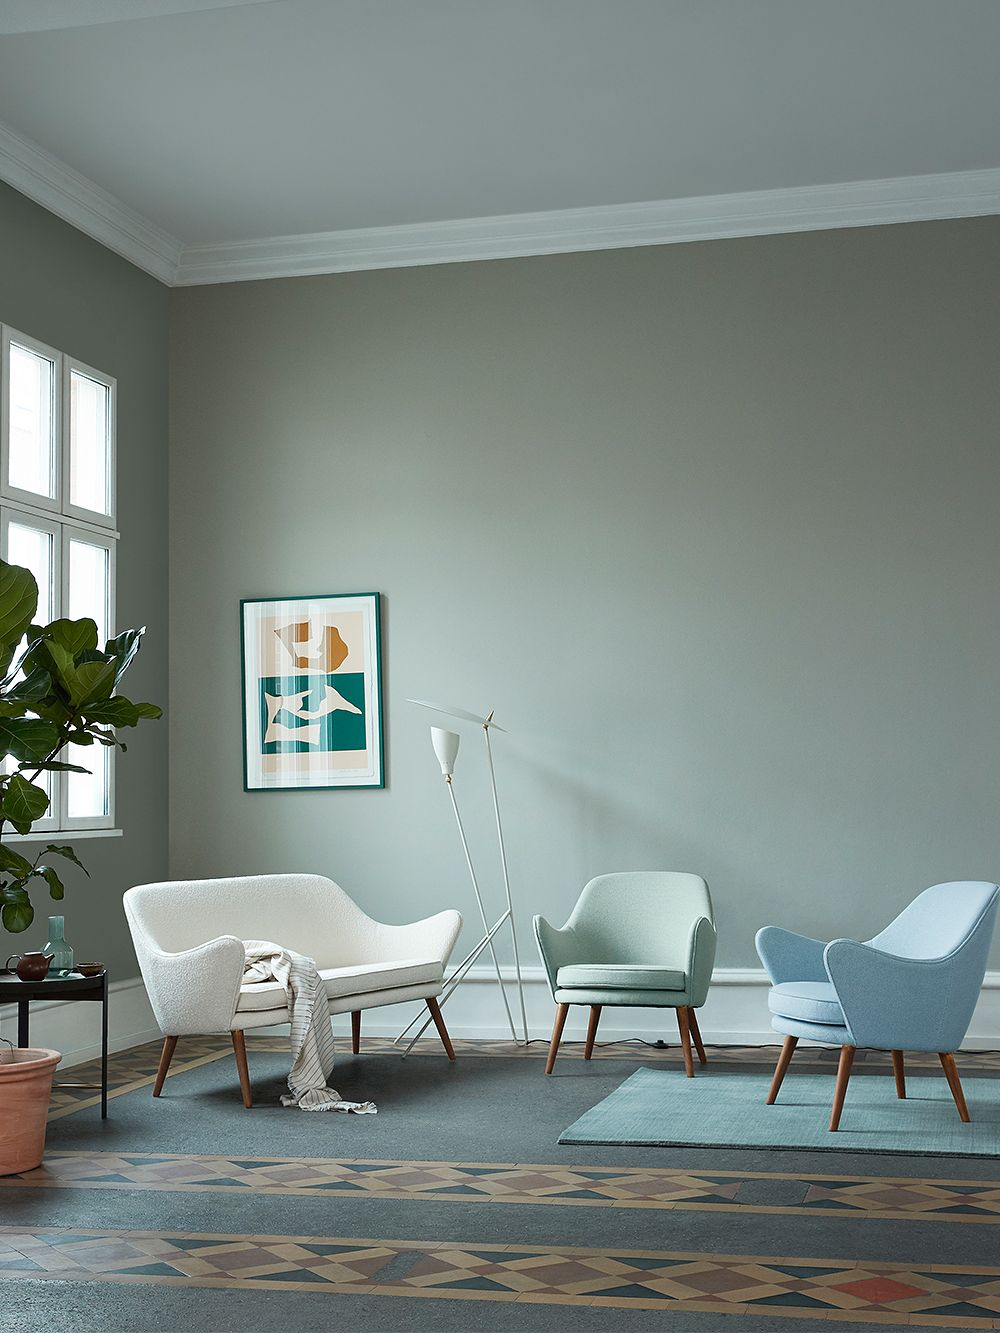 Warm Nordic's Dwell couch and Dwell armchairs in a living room setting.